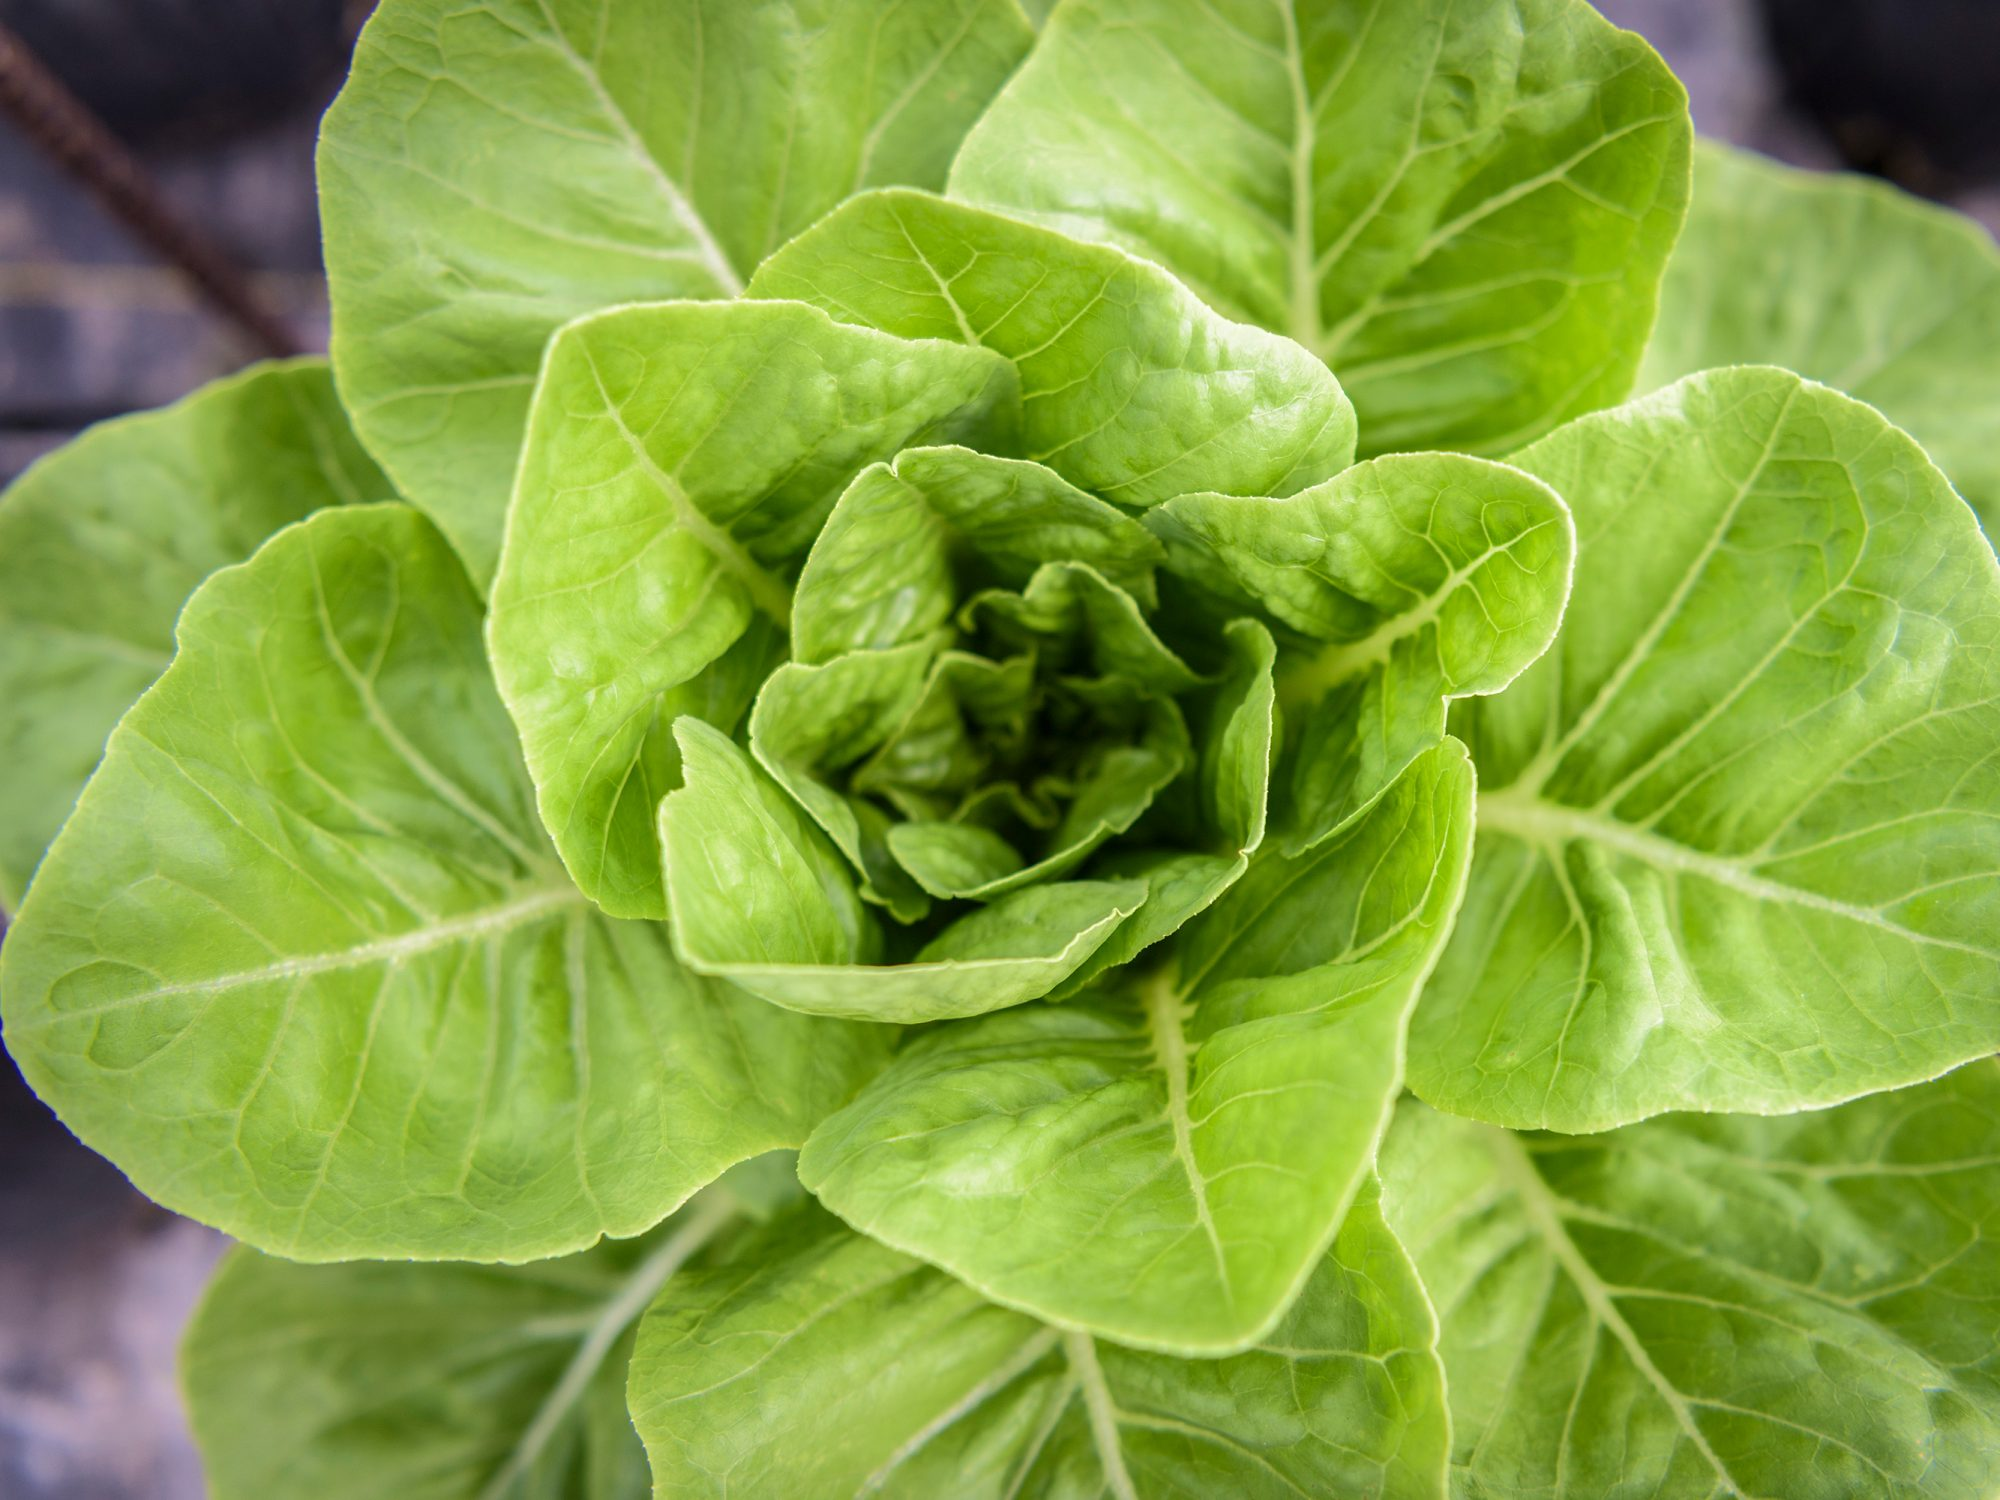 CDC Recommends Blanket Ban on ALL Romaine Lettuce, E. coli Discovered Once Again